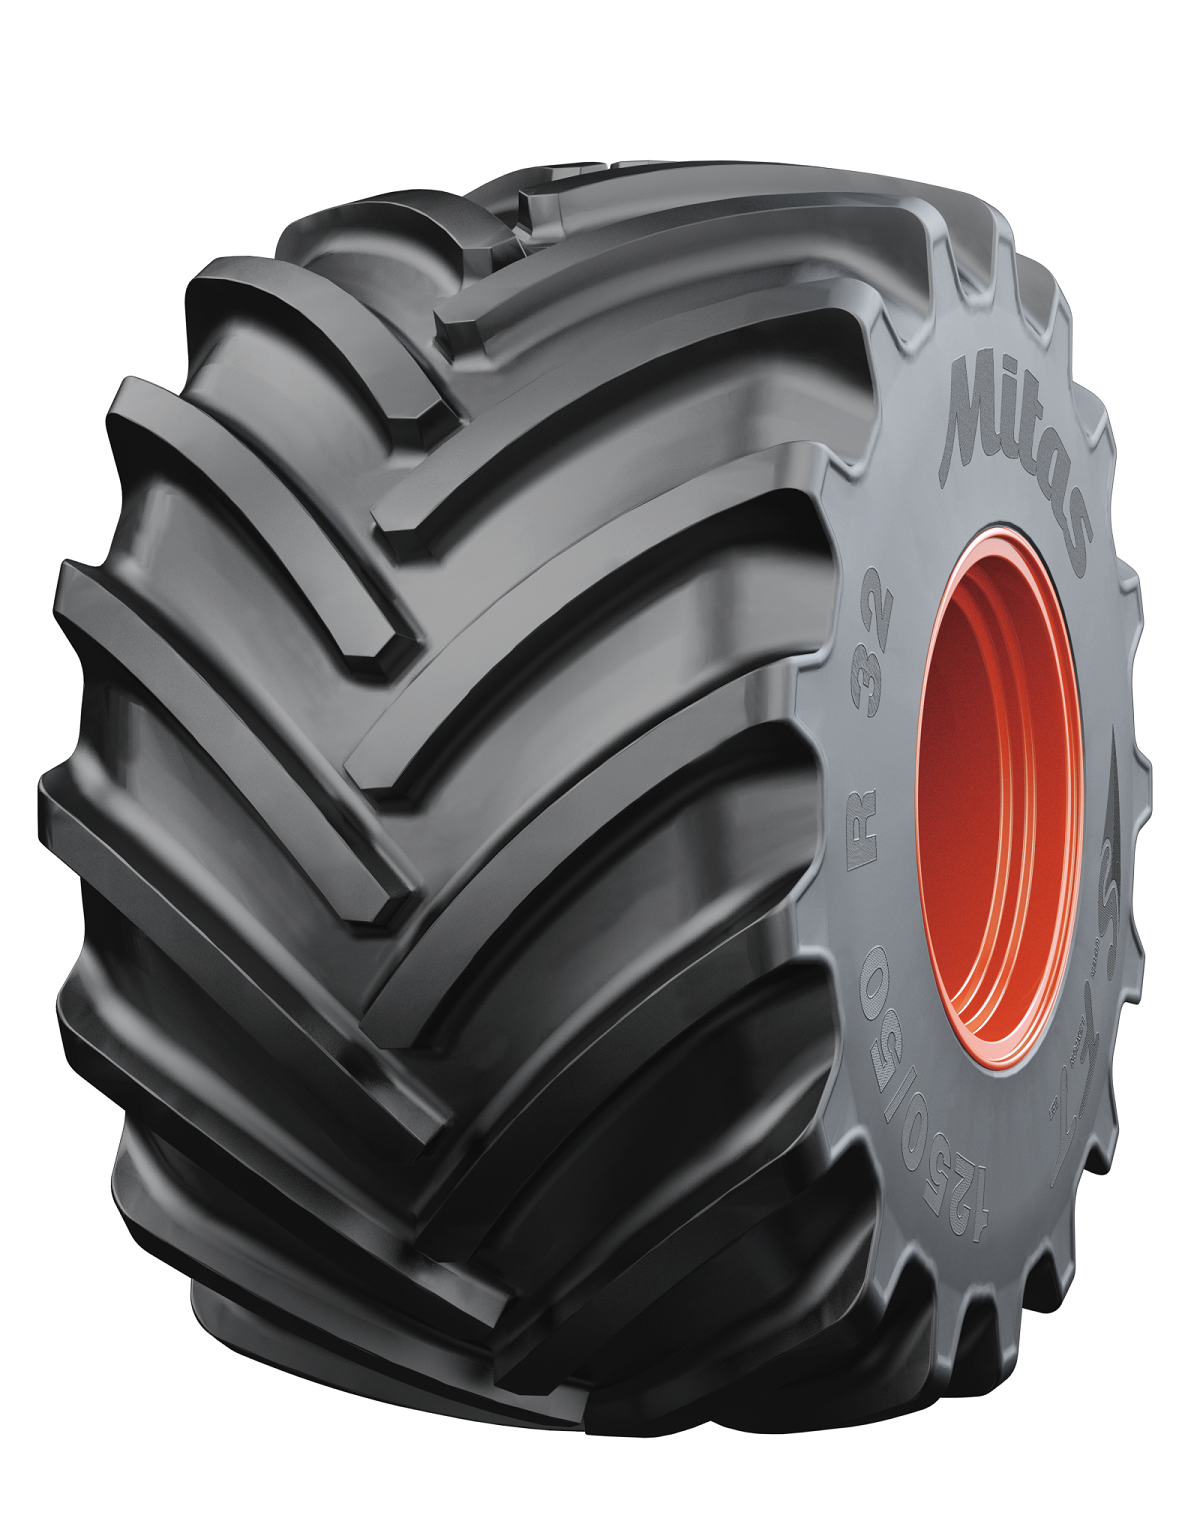 Mitas 1250/50R32 SFT is the heaviest tire in Mitas' product portfolio